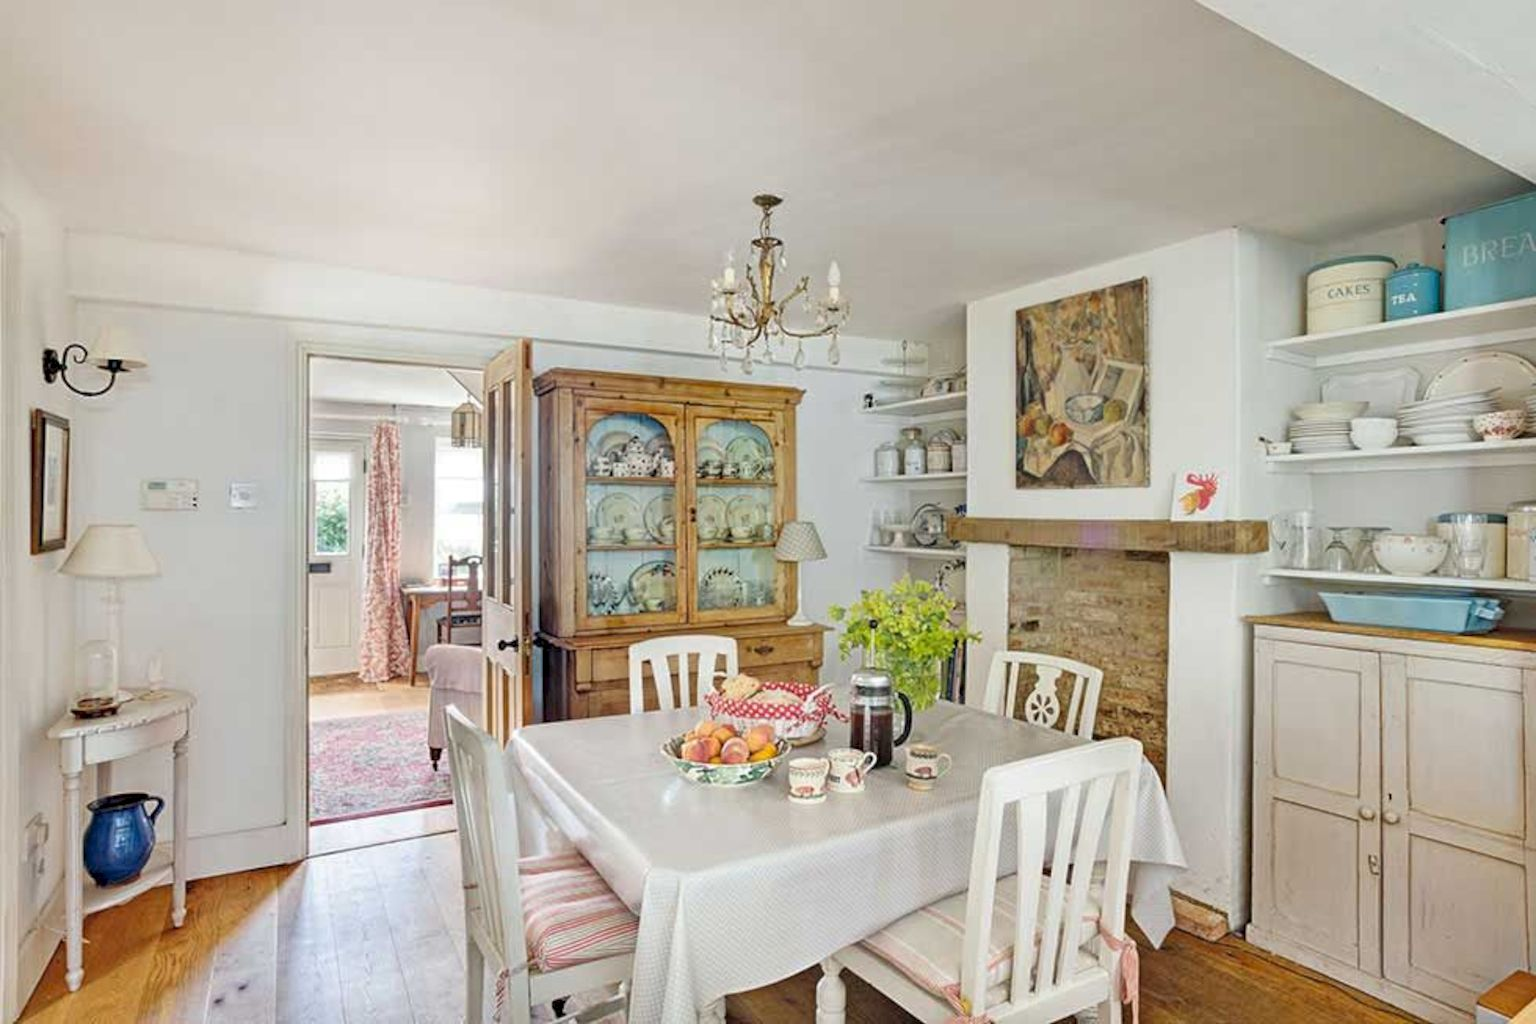 Beach home dining room style giving a fresh vibe among inviting recreational interior update Image 5